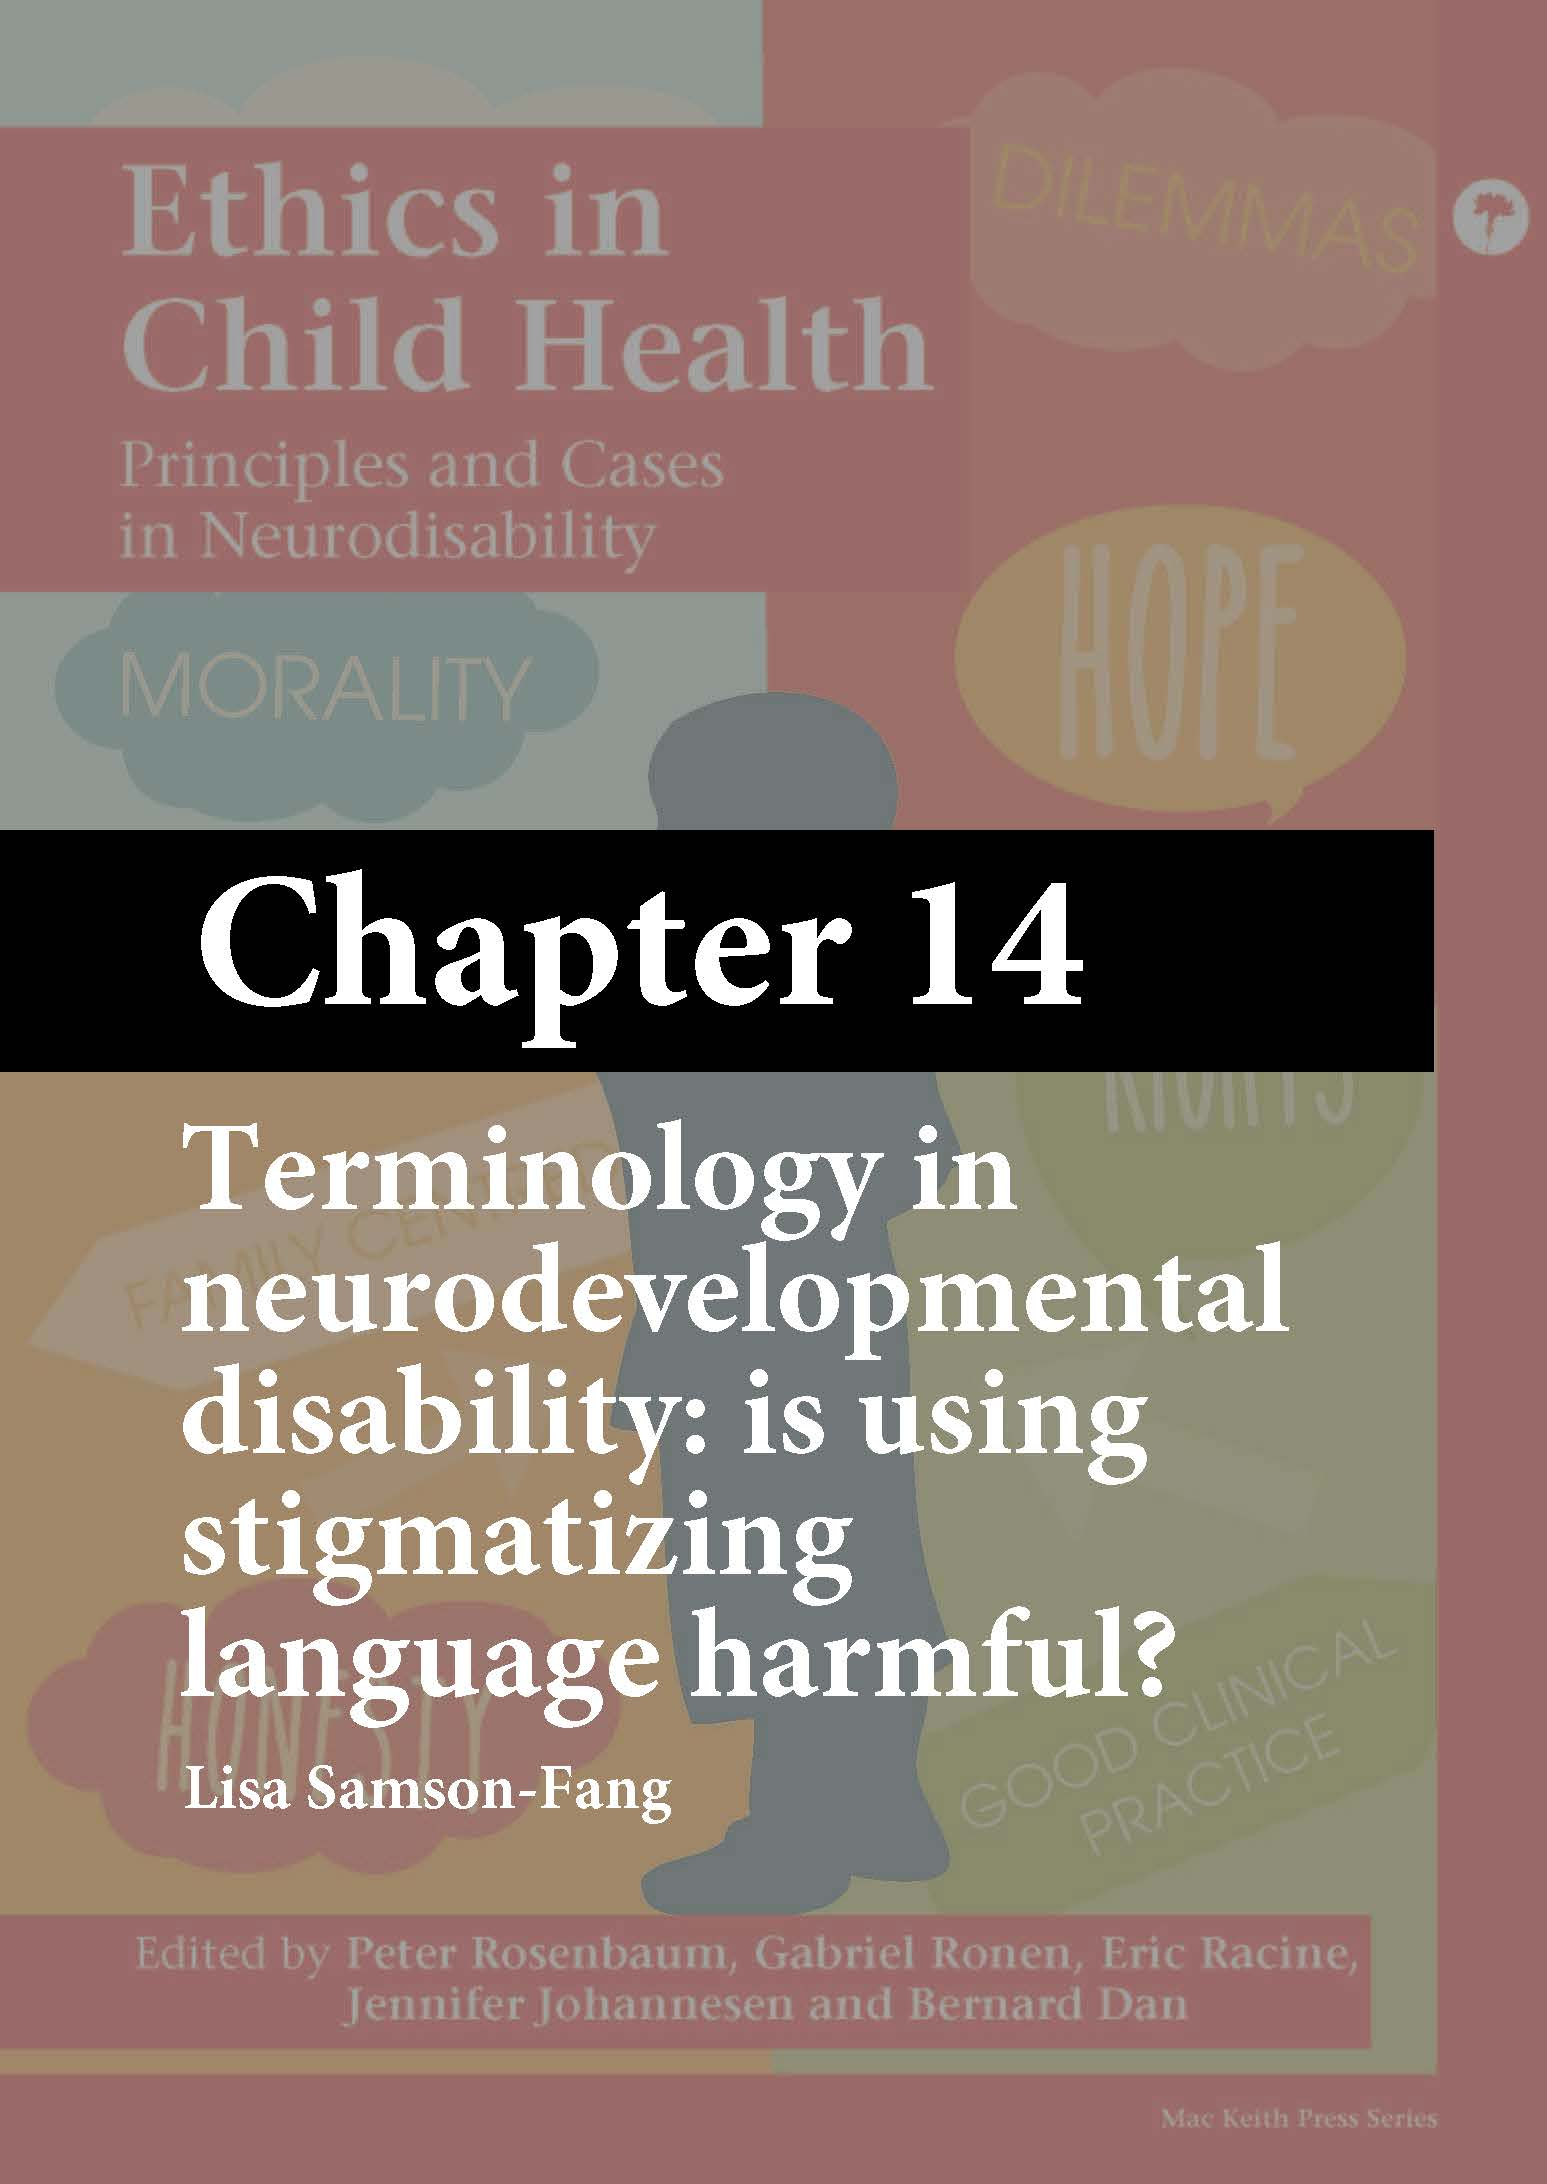 Ethics in Child Health, Rosenbaum, Chapter 14 cover